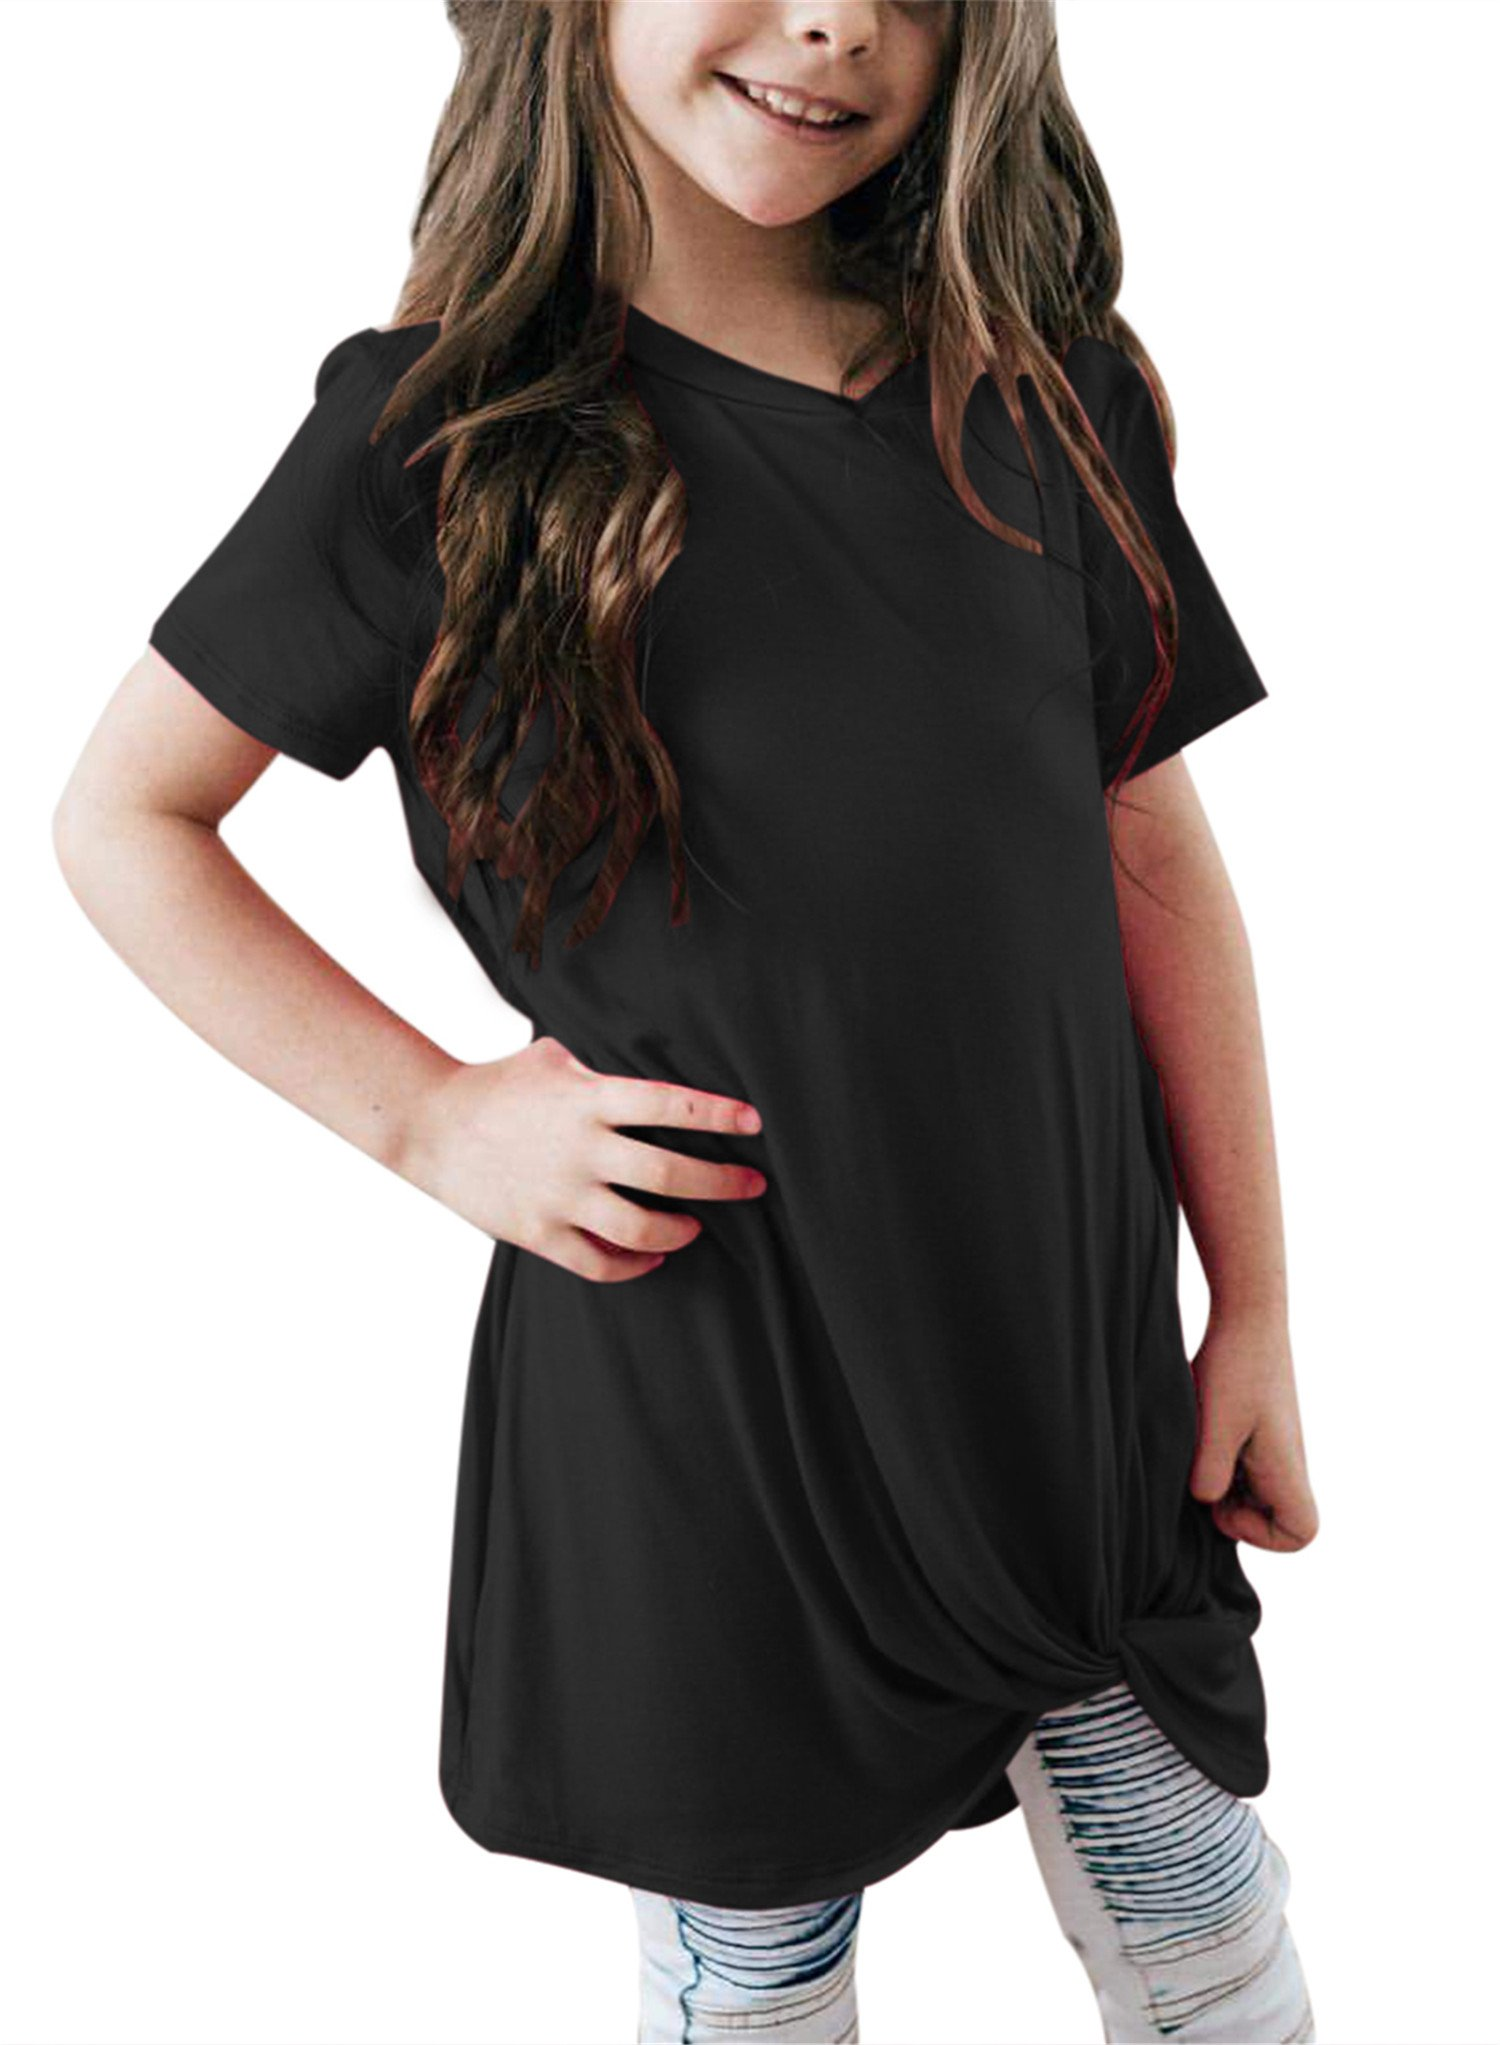 acdaf49f03cb3 Get Quotations · Bulawoo Girls Casual Loose Short Sleeve Knot Front Tops Tee  Shirts Size 4-13